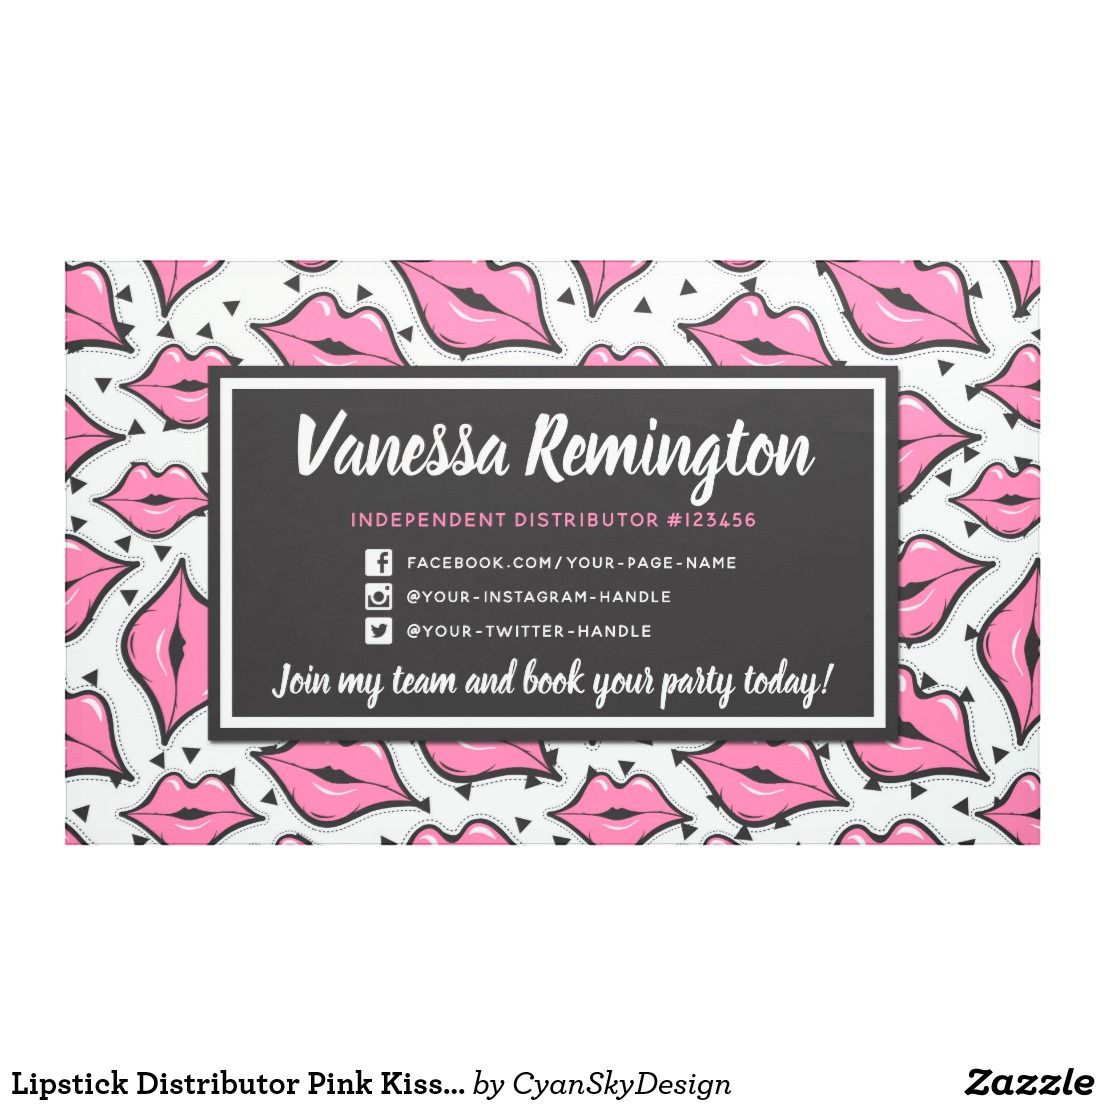 Lipstick Distributor Pink Kiss Party Trade Show Banner